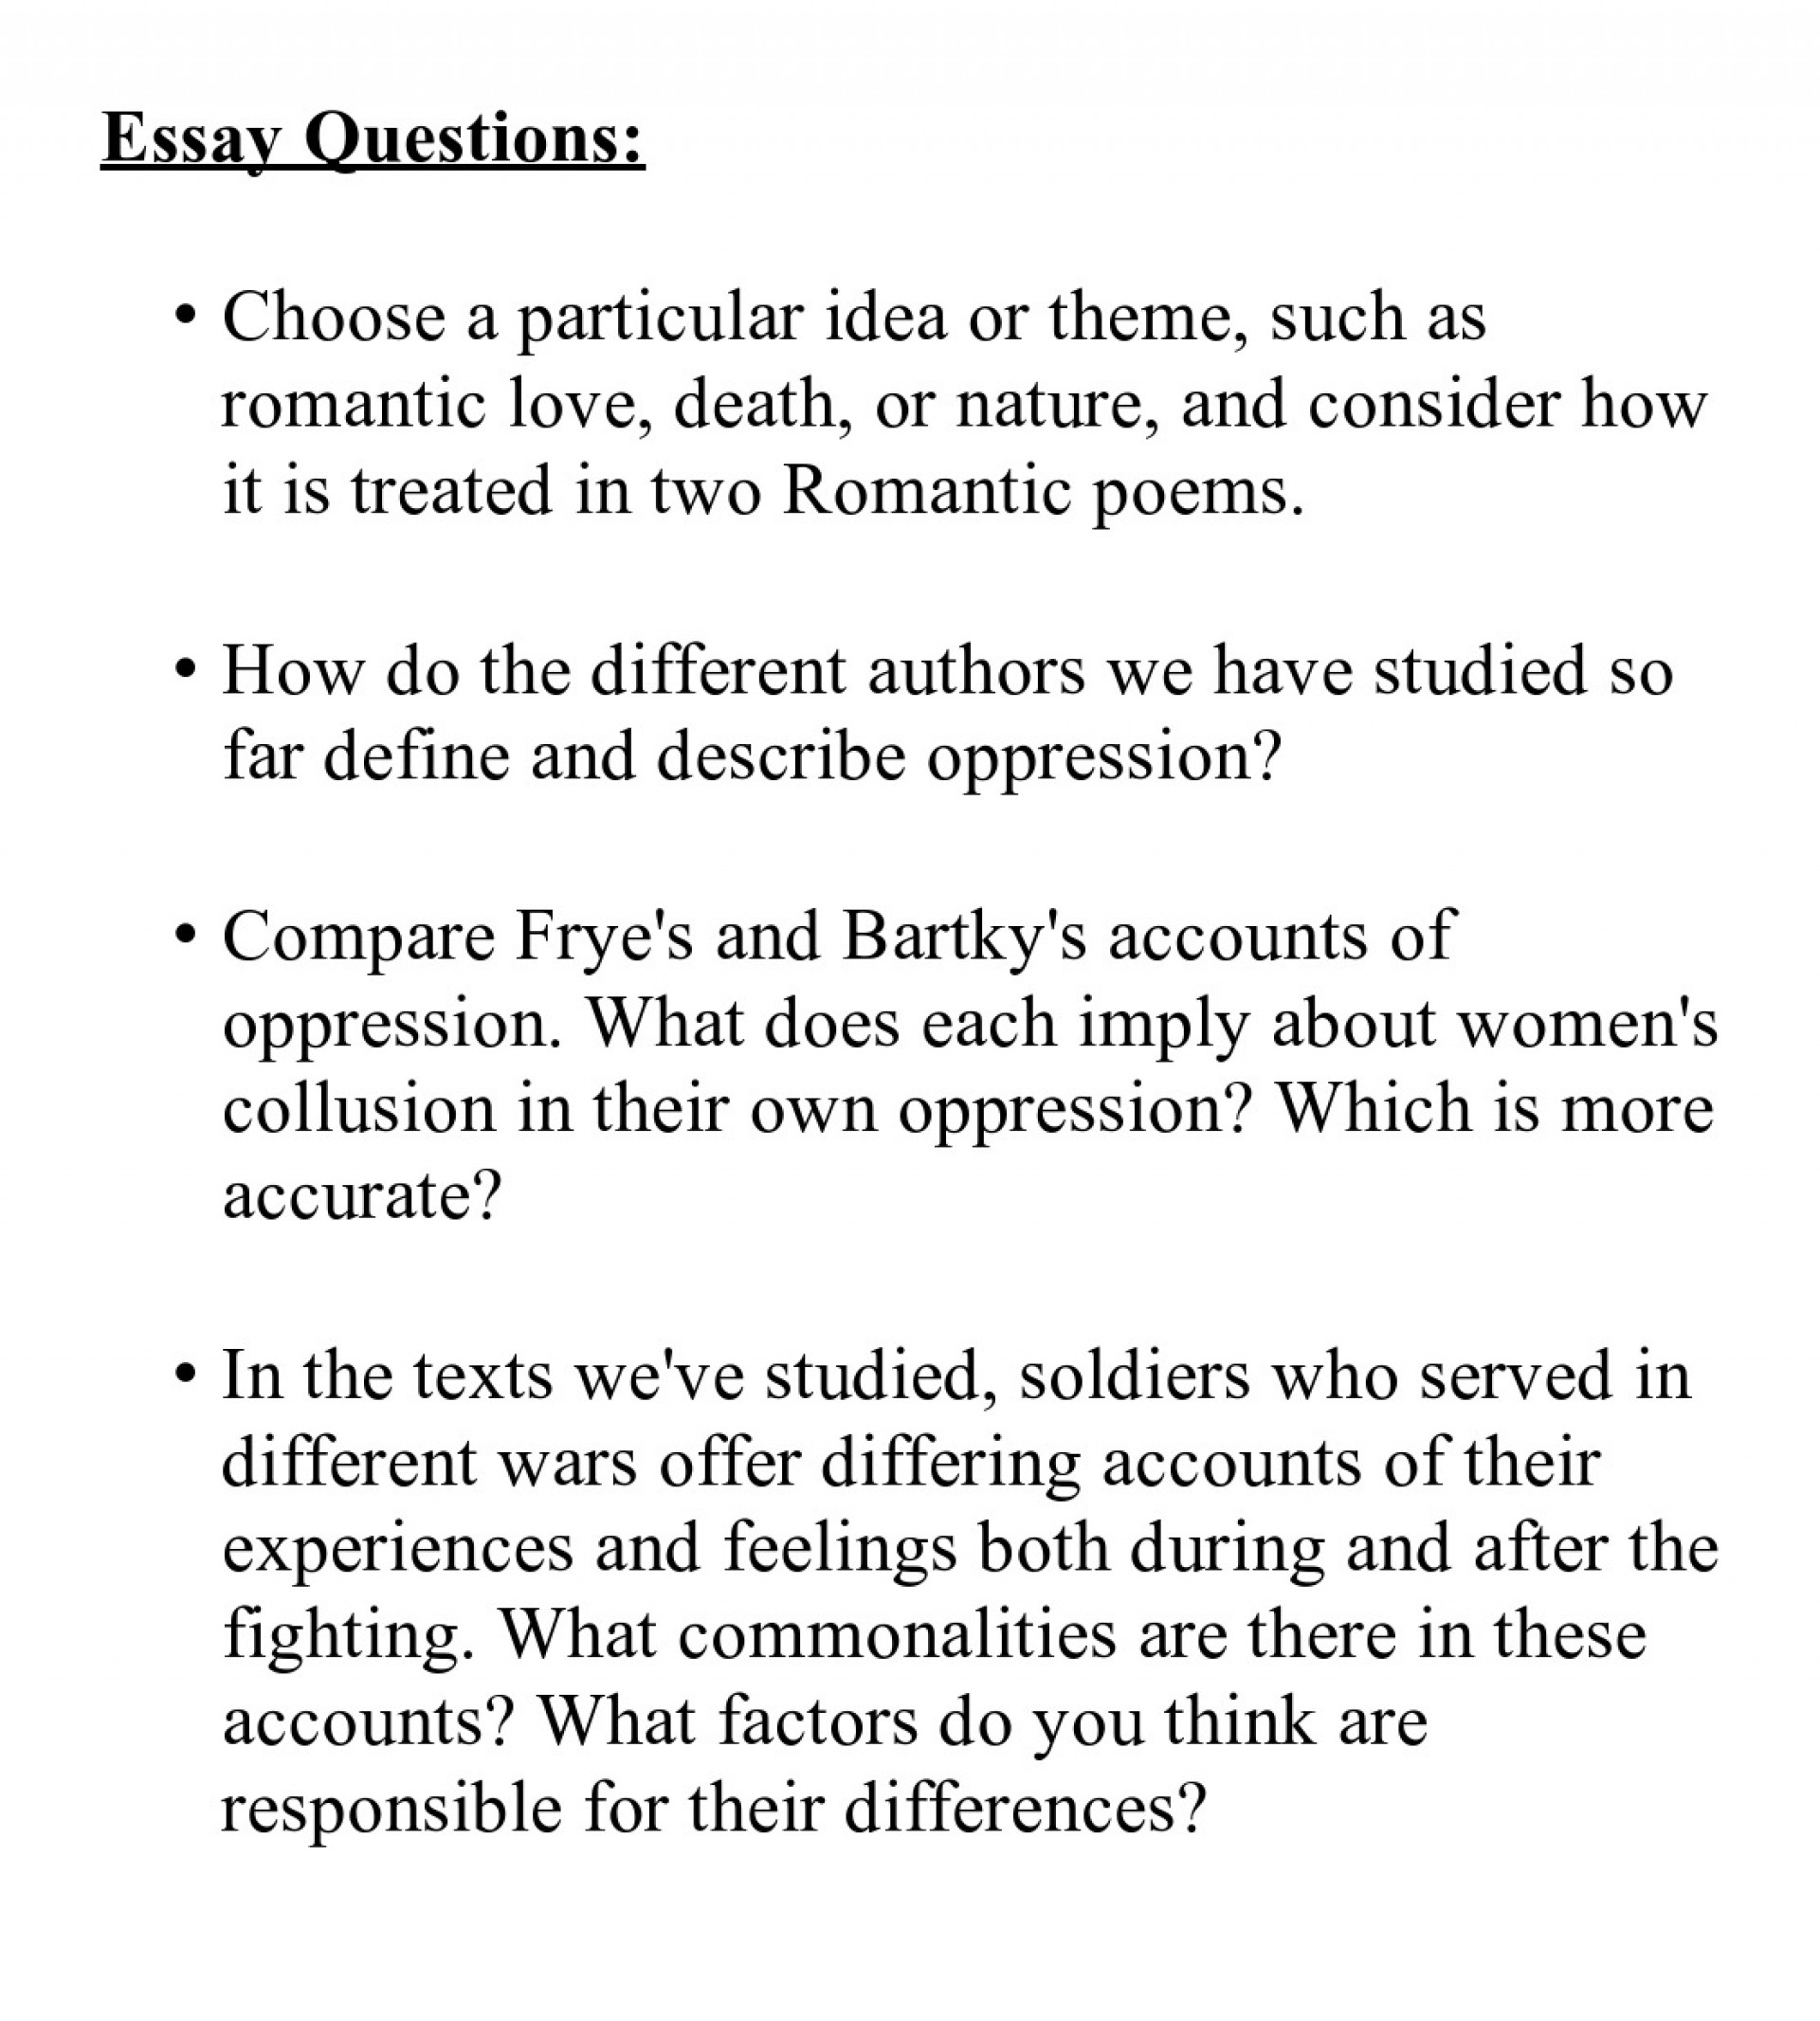 001 Essay Questions Example Awful For Fahrenheit 451 And Answers On The Great Gatsby Lady Macbeth 1920